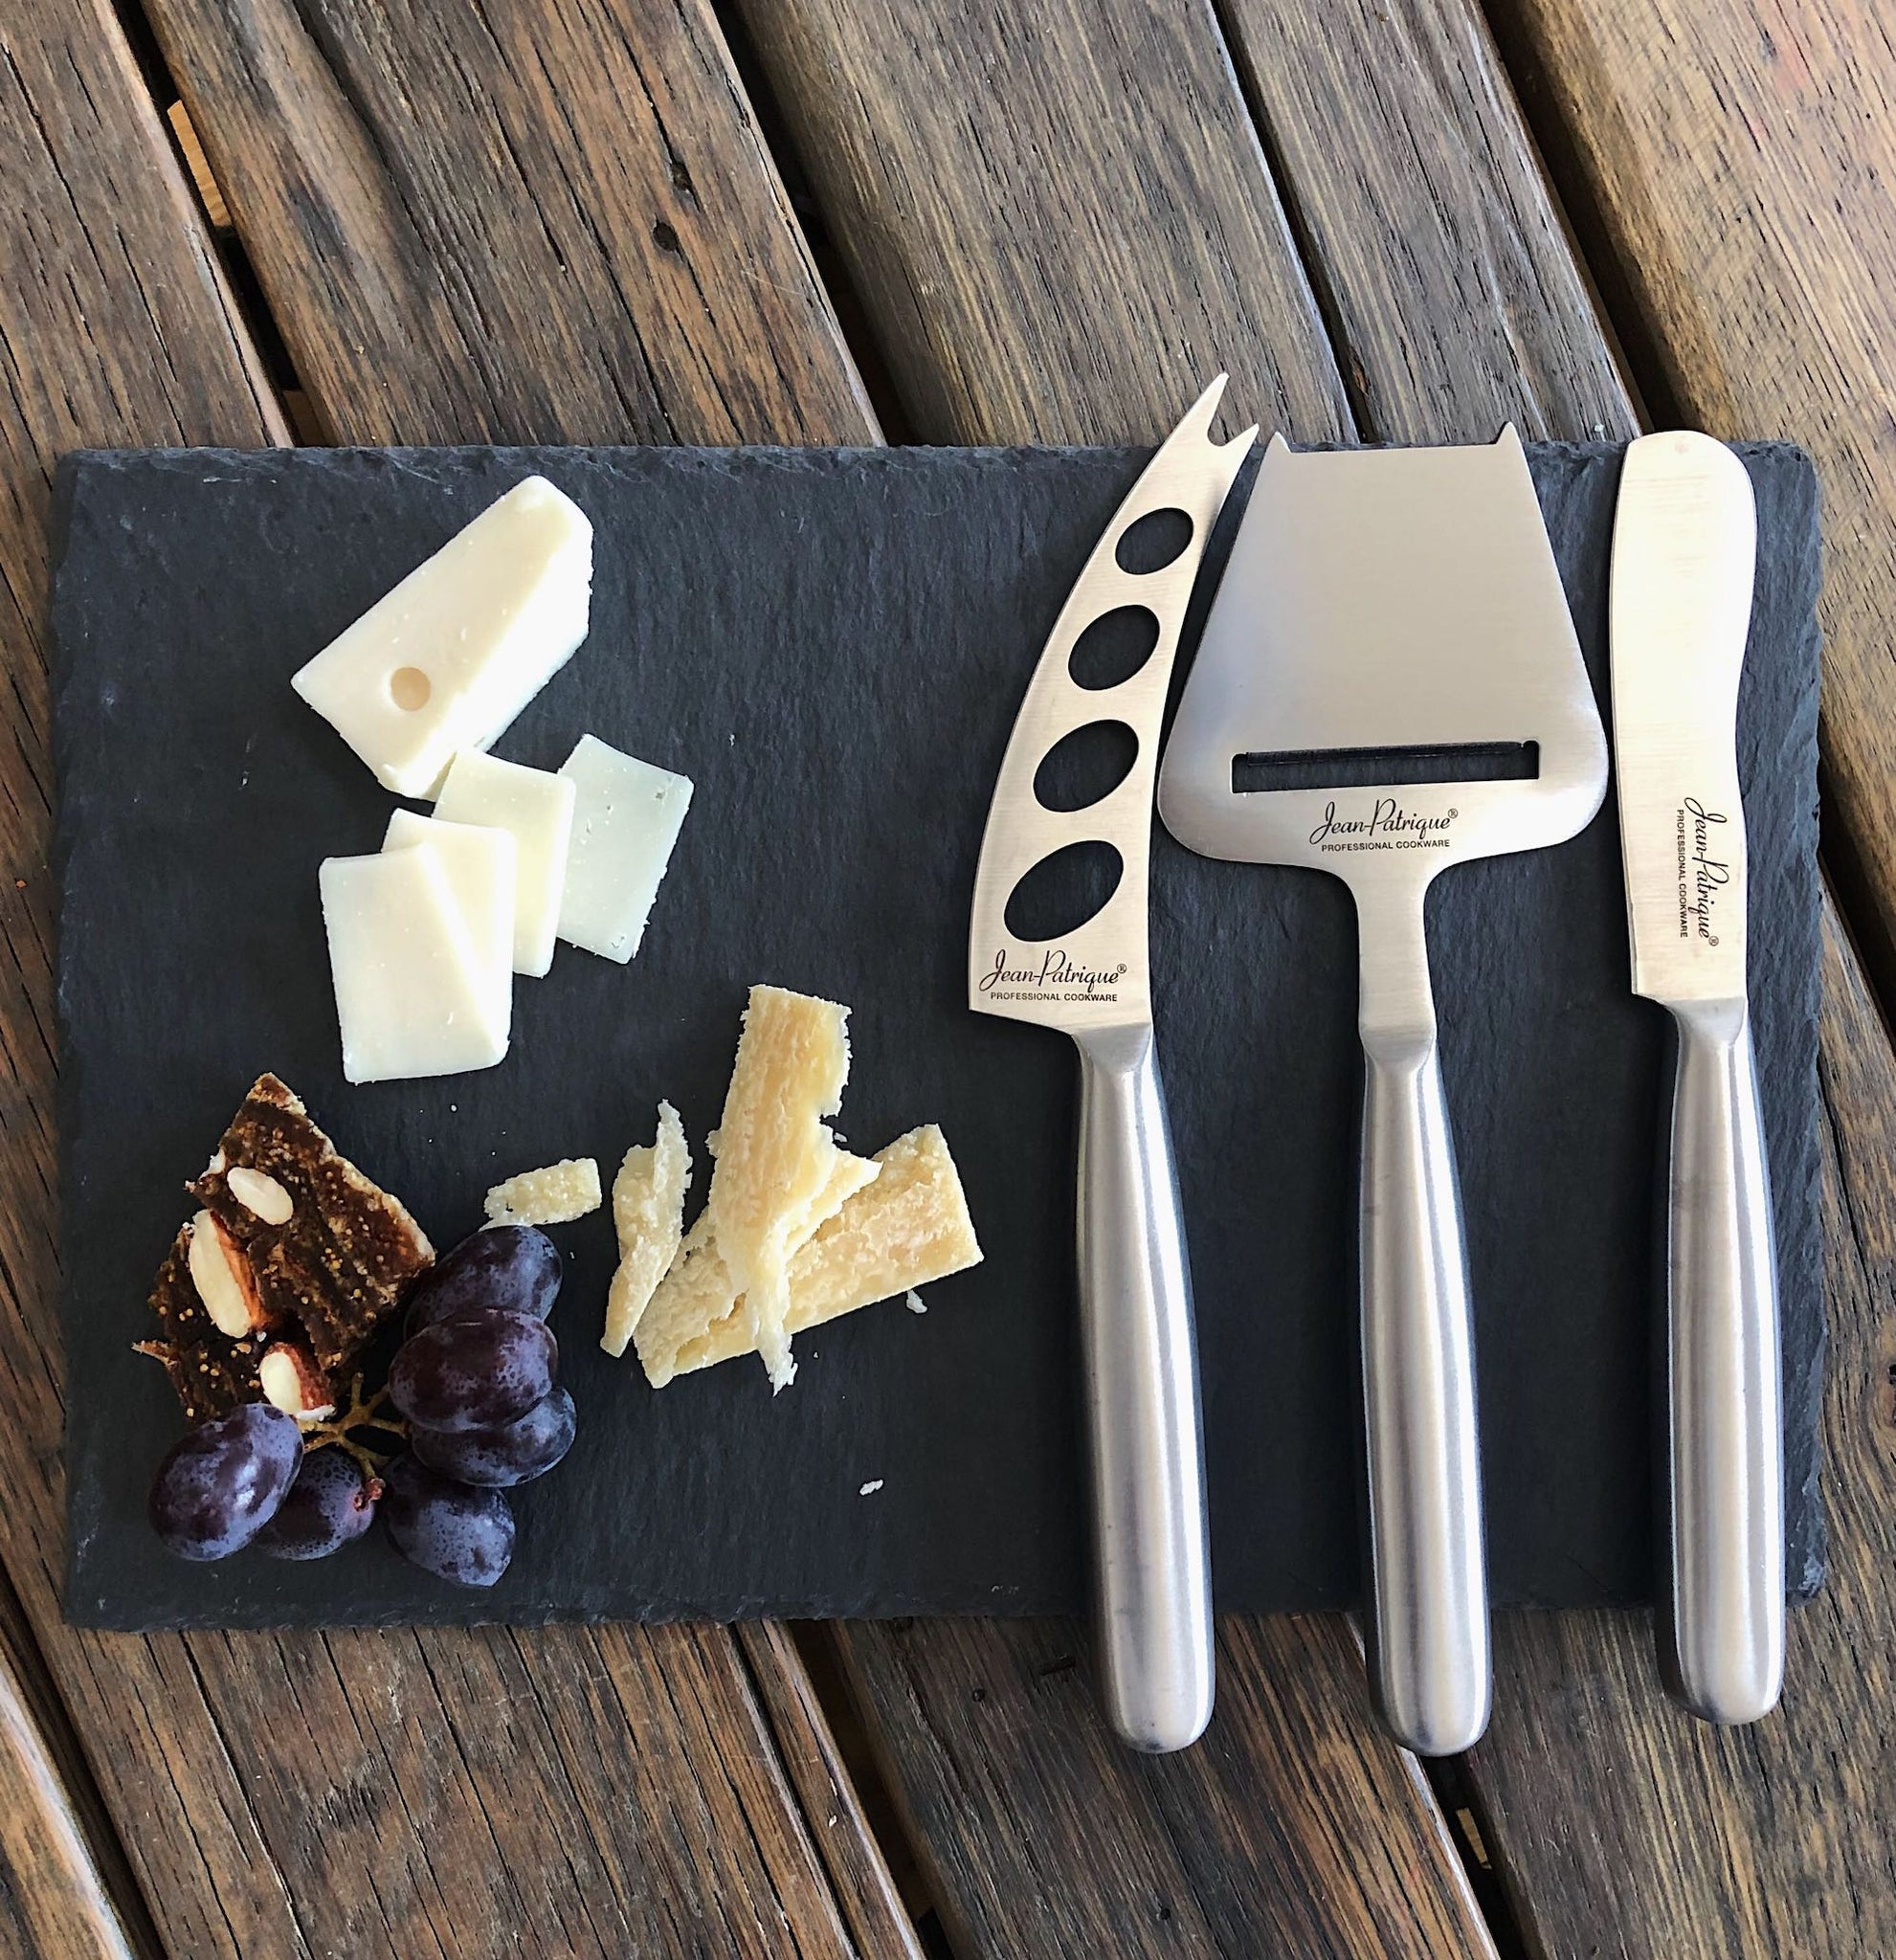 Tuscany Slate Serving Board & 3 Piece Cheese Knife Set